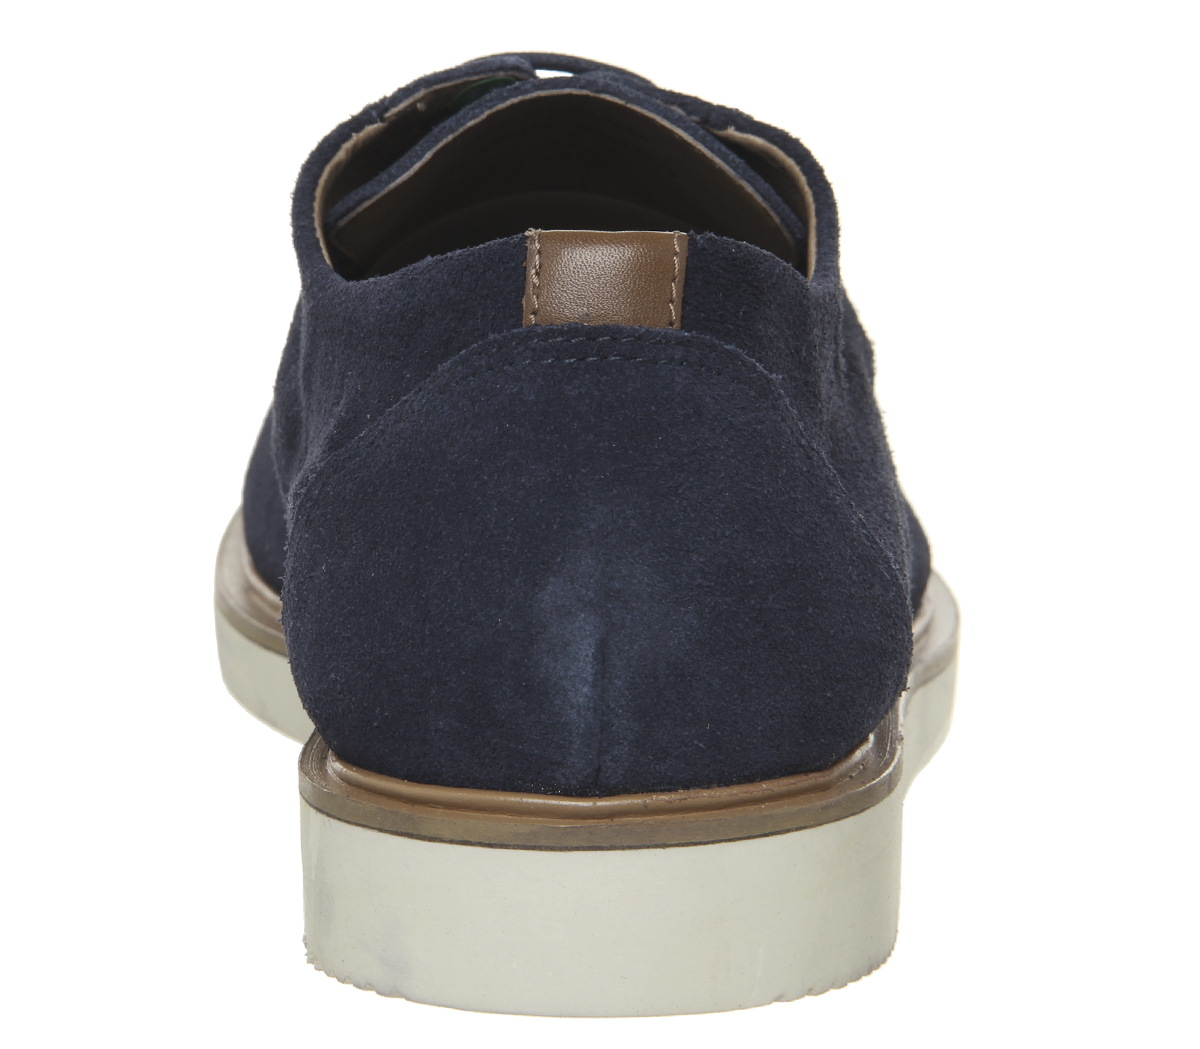 Mens-Office-Item-Derby-Shoes-Navy-Suede-Casual-Shoes thumbnail 7